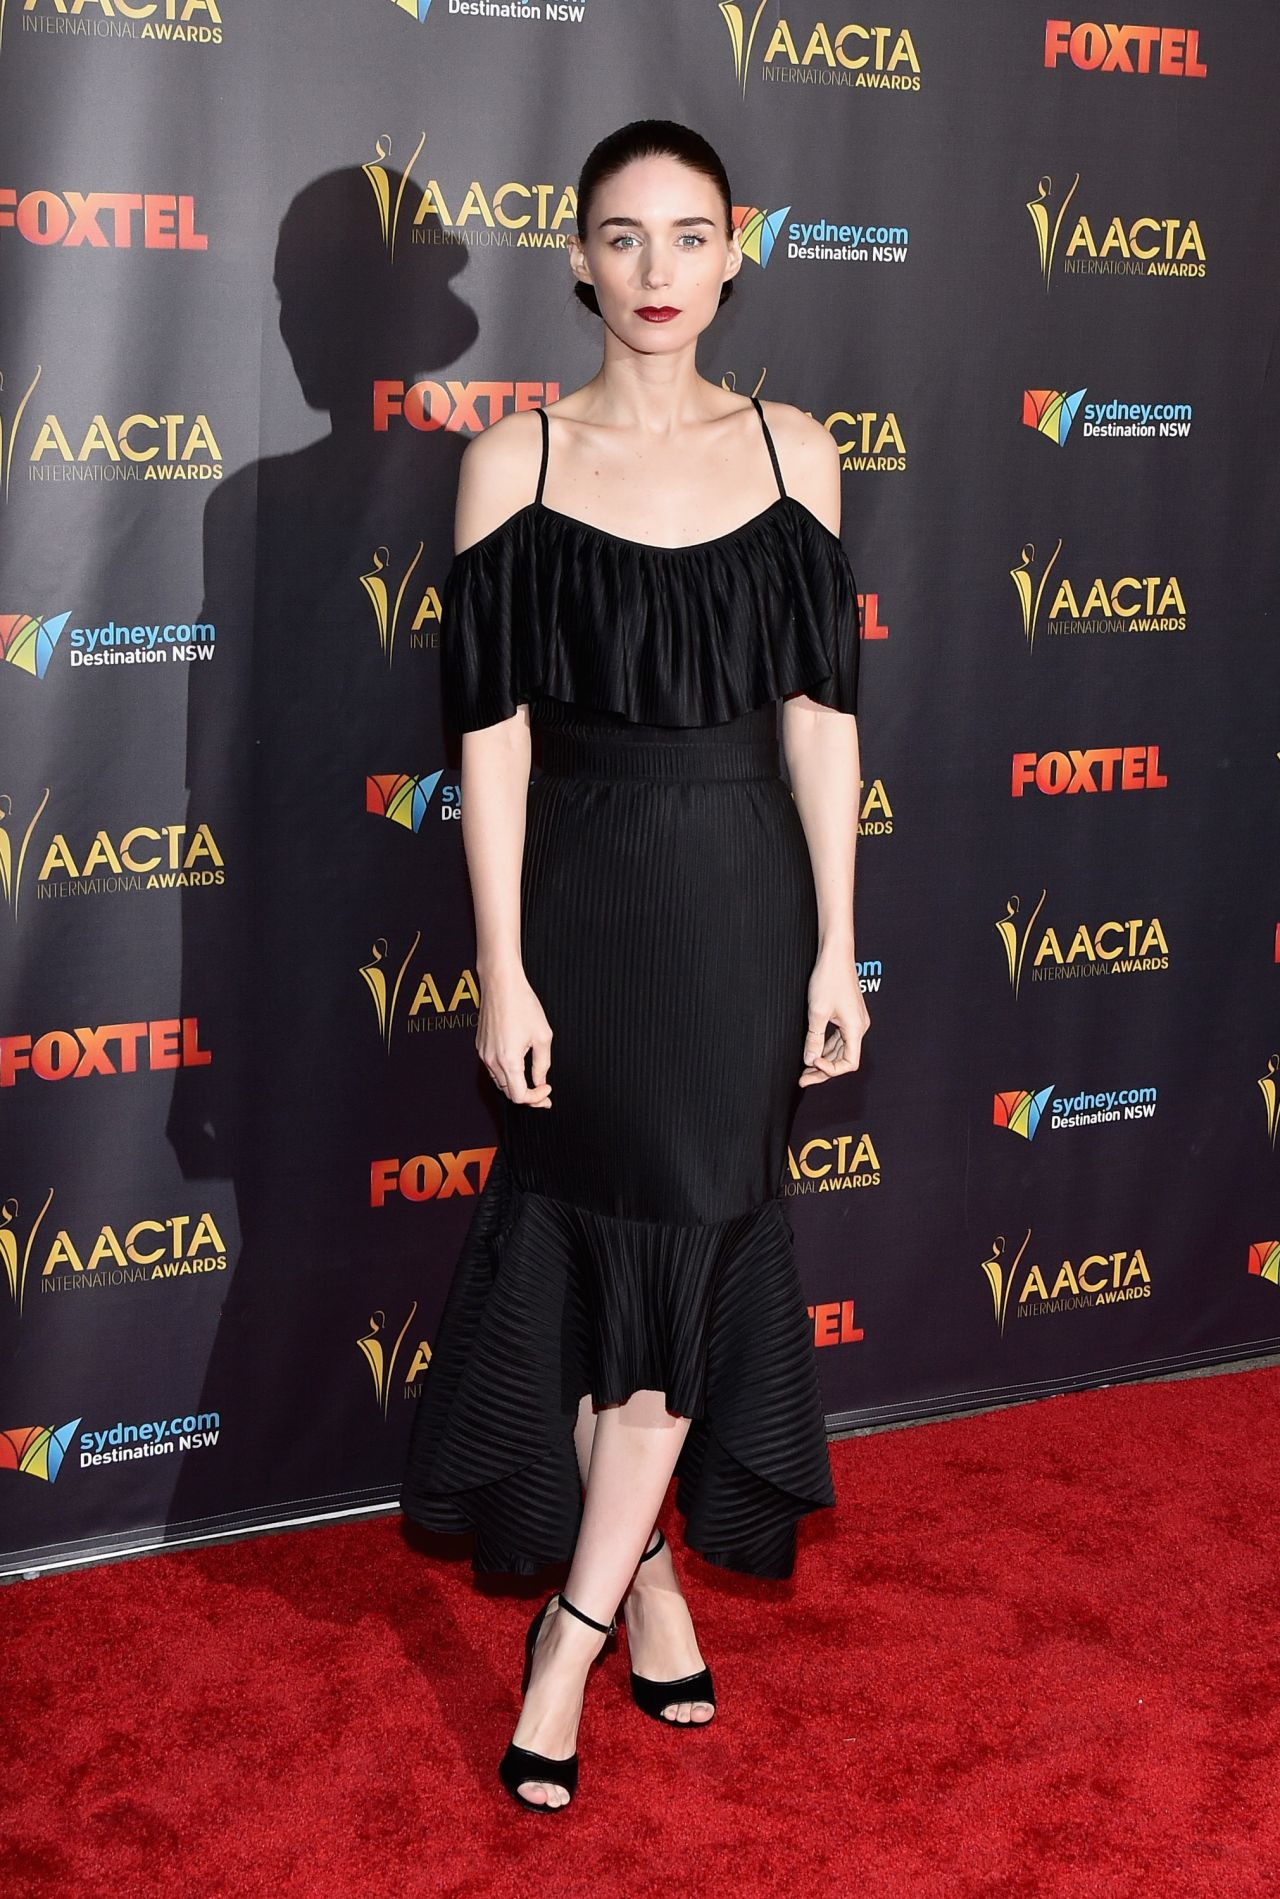 rooney-mara-2016-aacta-international-awards-ceremony-in-los-angeles-4